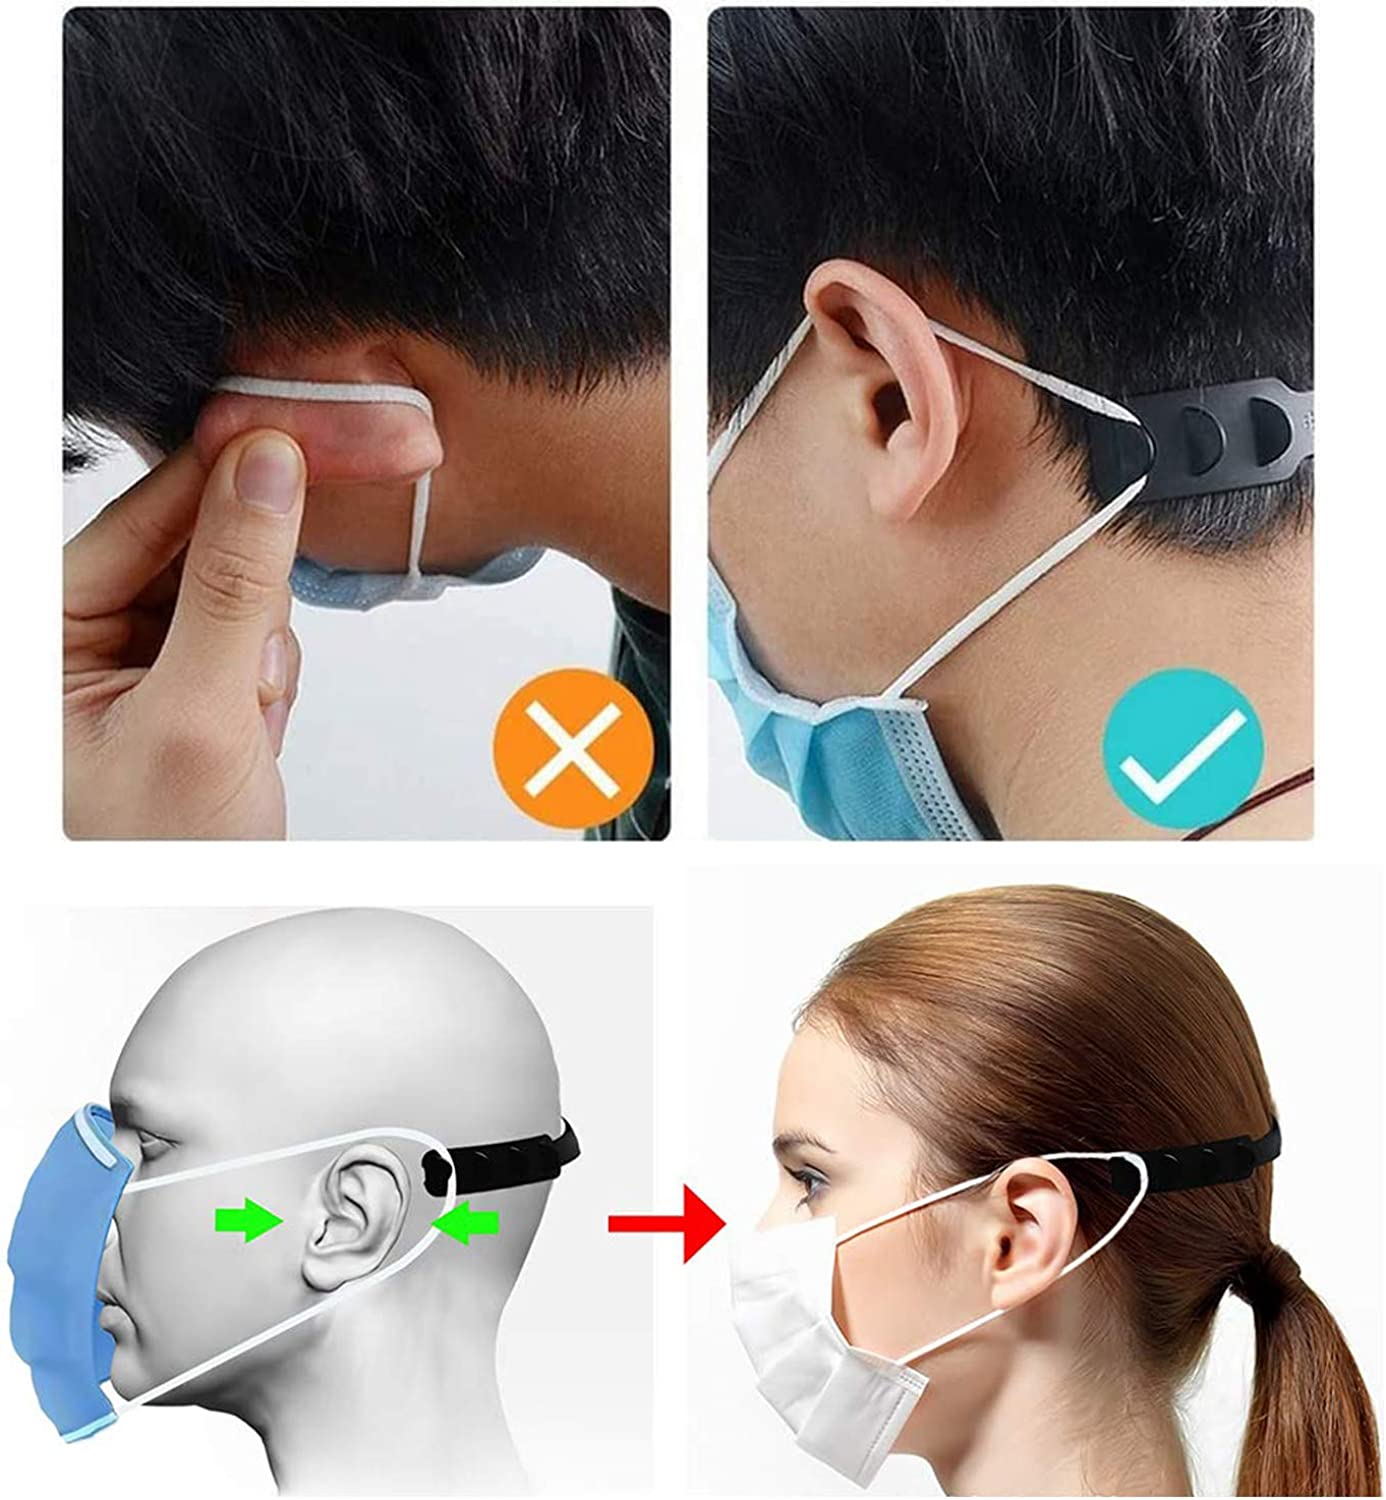 New York Shipping Engilent 10PCS Colorful Mask Extender,Anti-Tightening Holder Hook Ear Strap Accessories Ear Grips Extension Mask Buckle Ear Pain Relieved